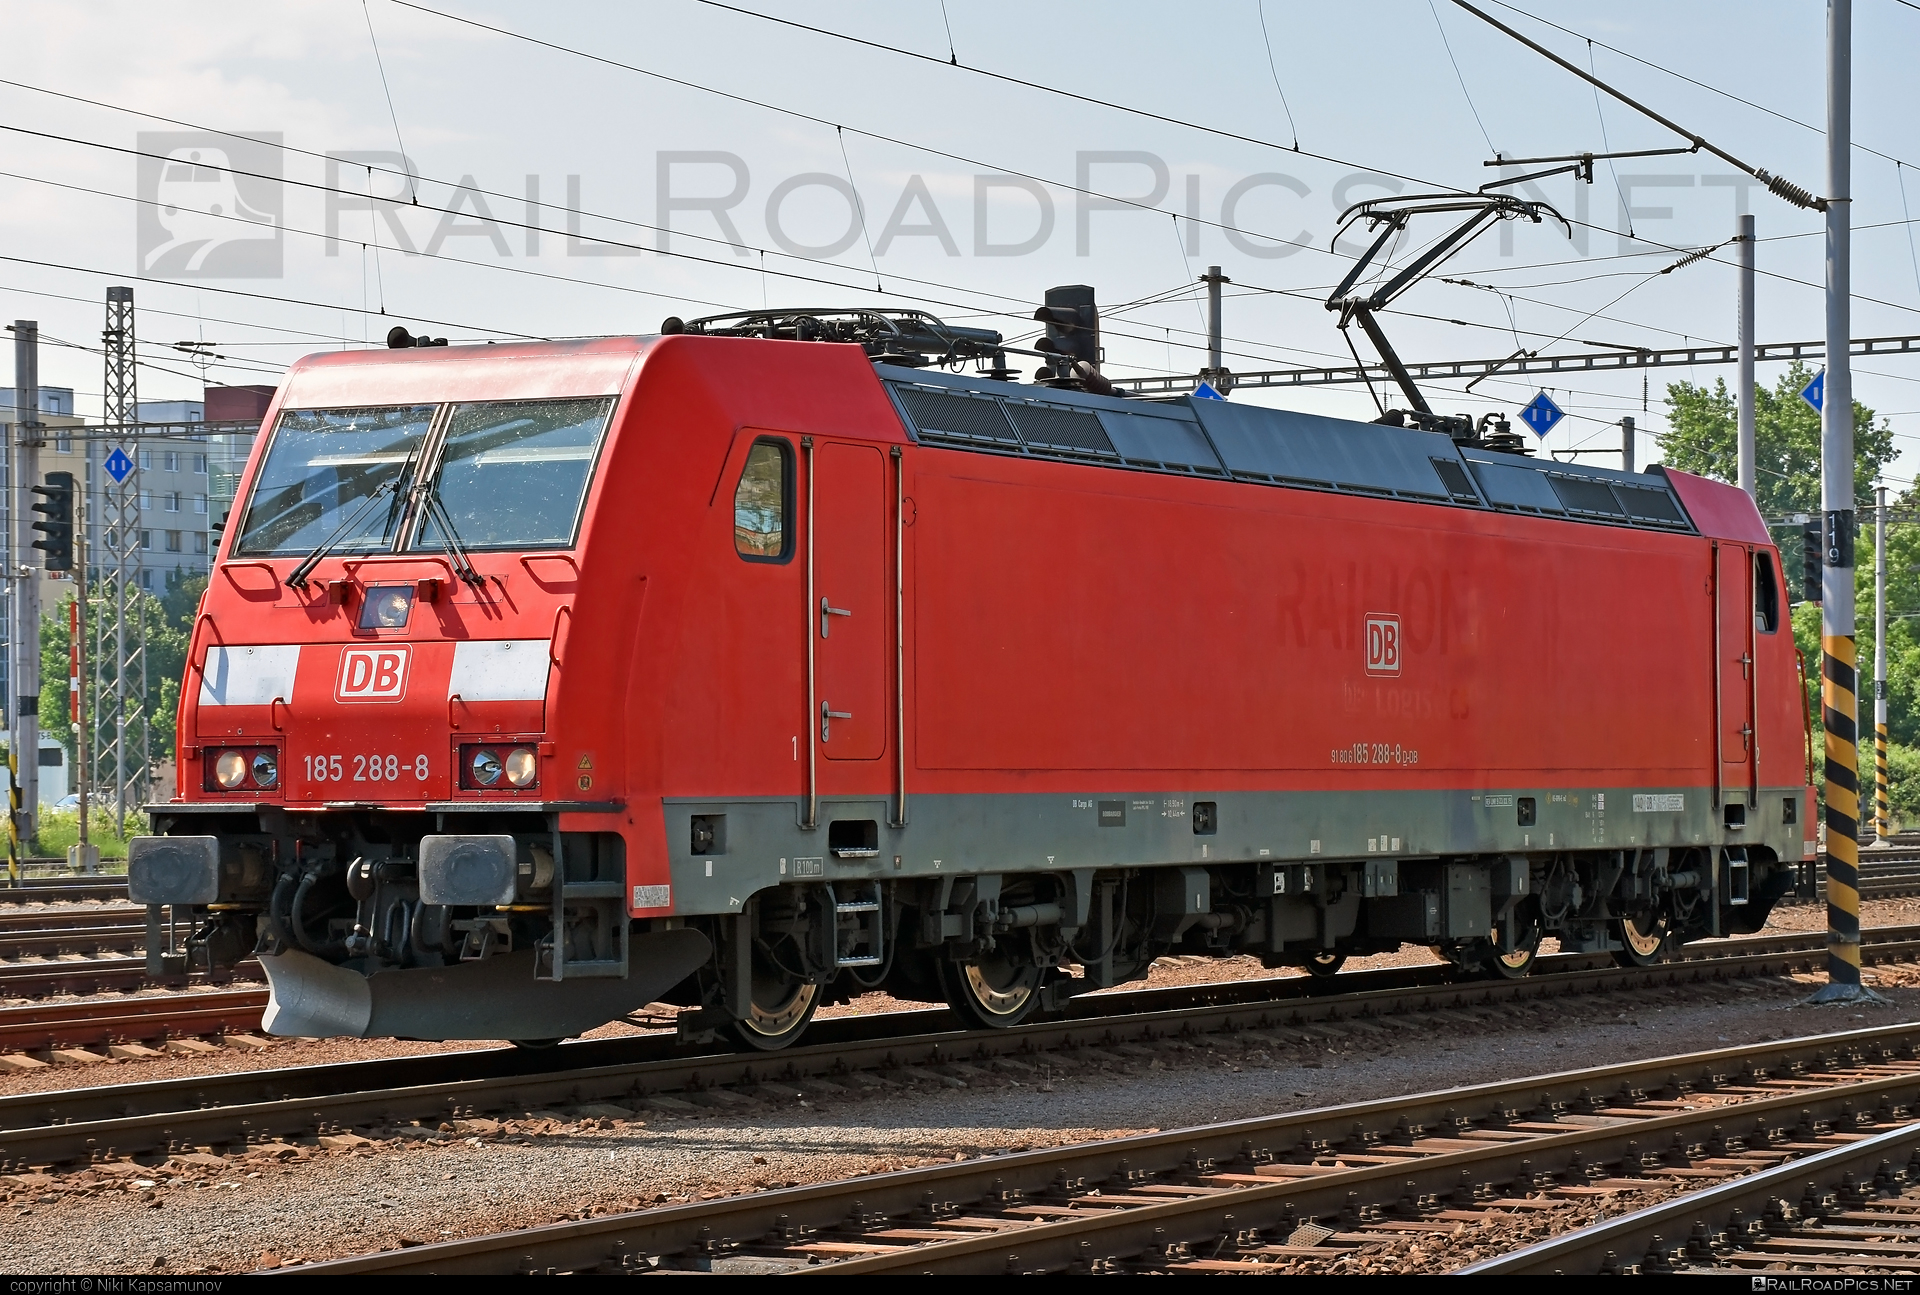 Bombardier TRAXX F140 AC2 - 185 288-8 operated by DB Cargo AG #bombardier #bombardiertraxx #db #dbcargo #dbcargoag #traxx #traxxf140 #traxxf140ac #traxxf140ac2